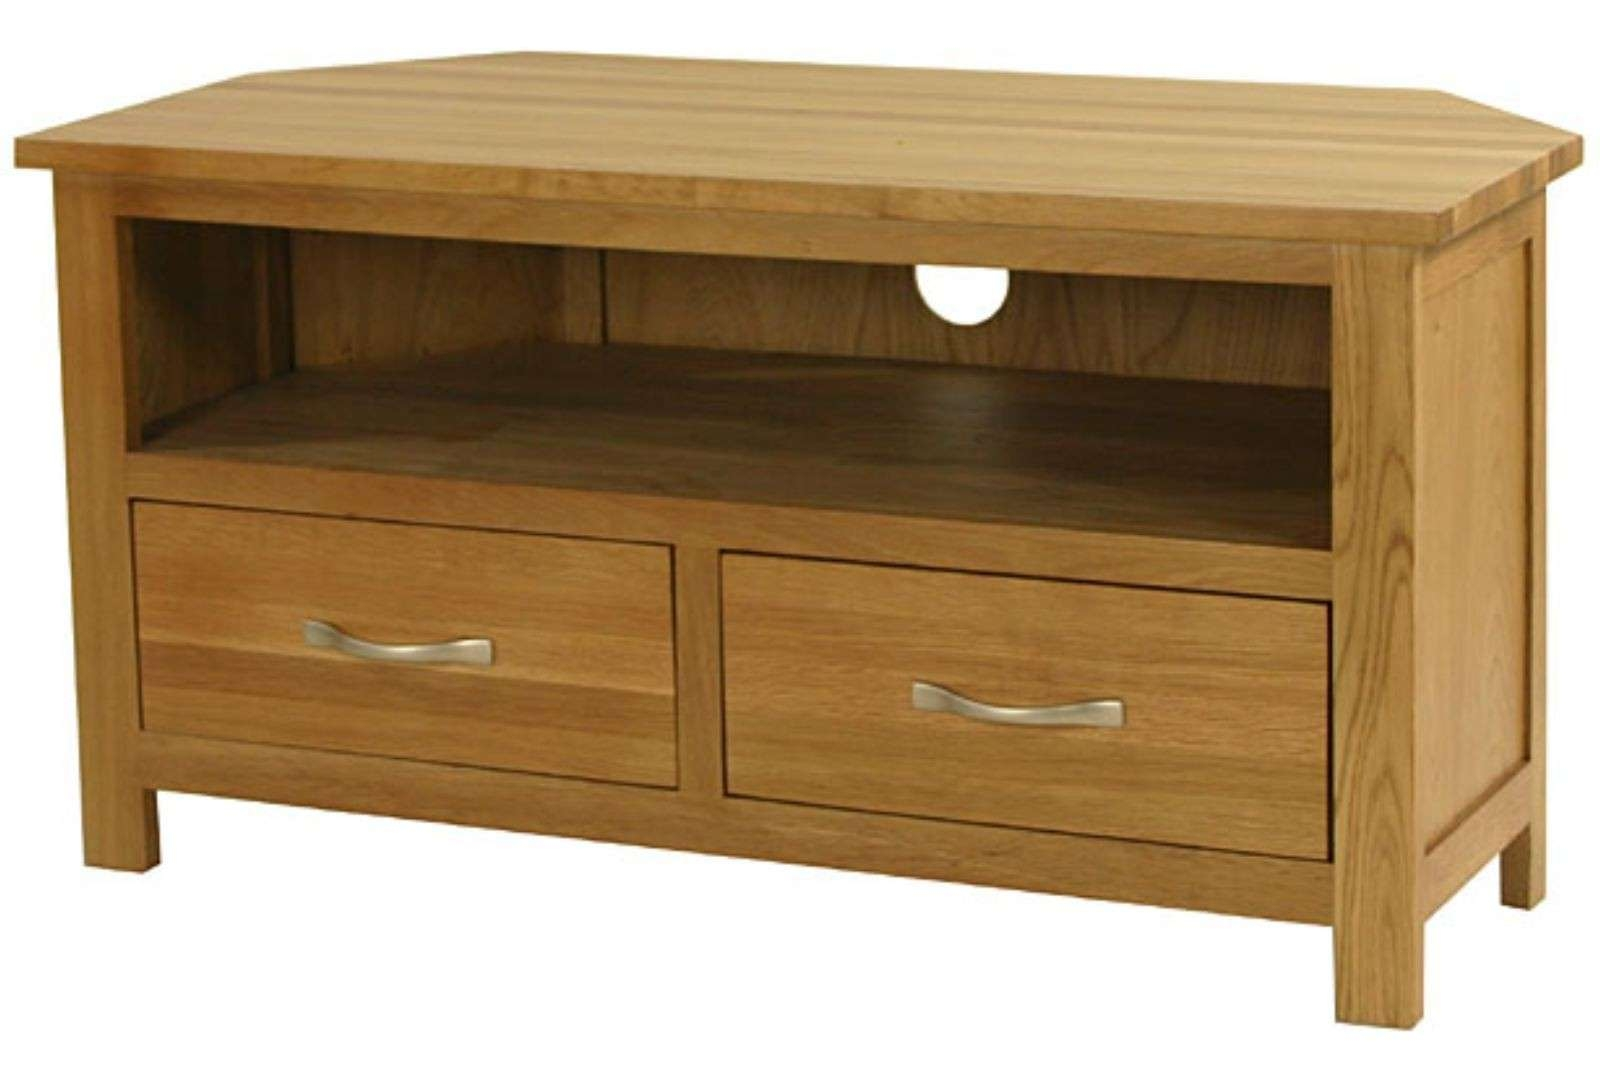 Nursing Home Furniture Corner Tv Unit From Hill & Hill Design With Regard To Tv Cabinets Corner Units (View 15 of 20)